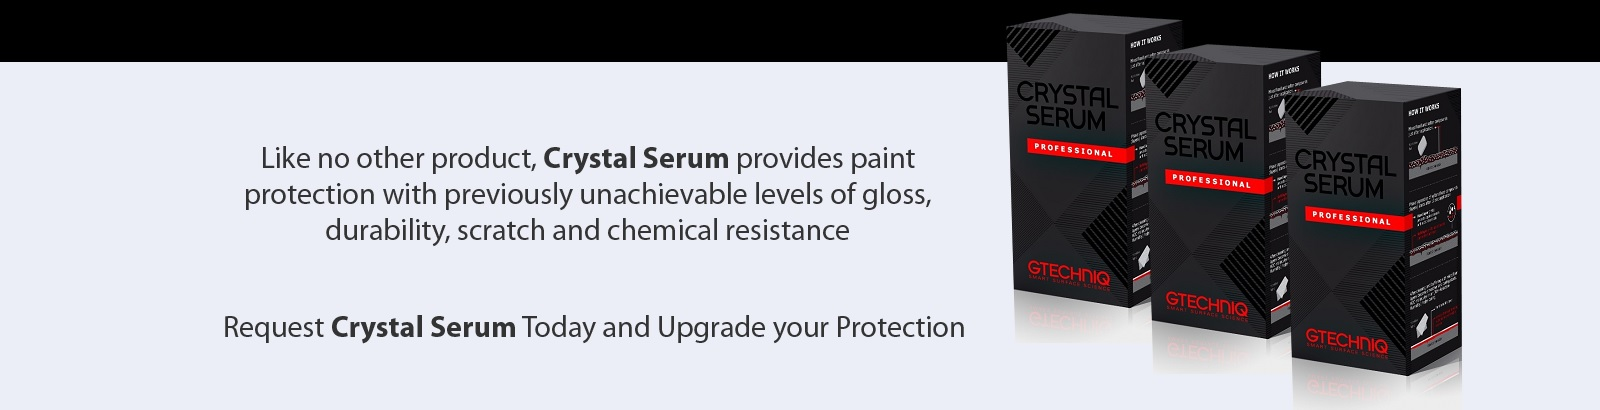 Crystal Serum